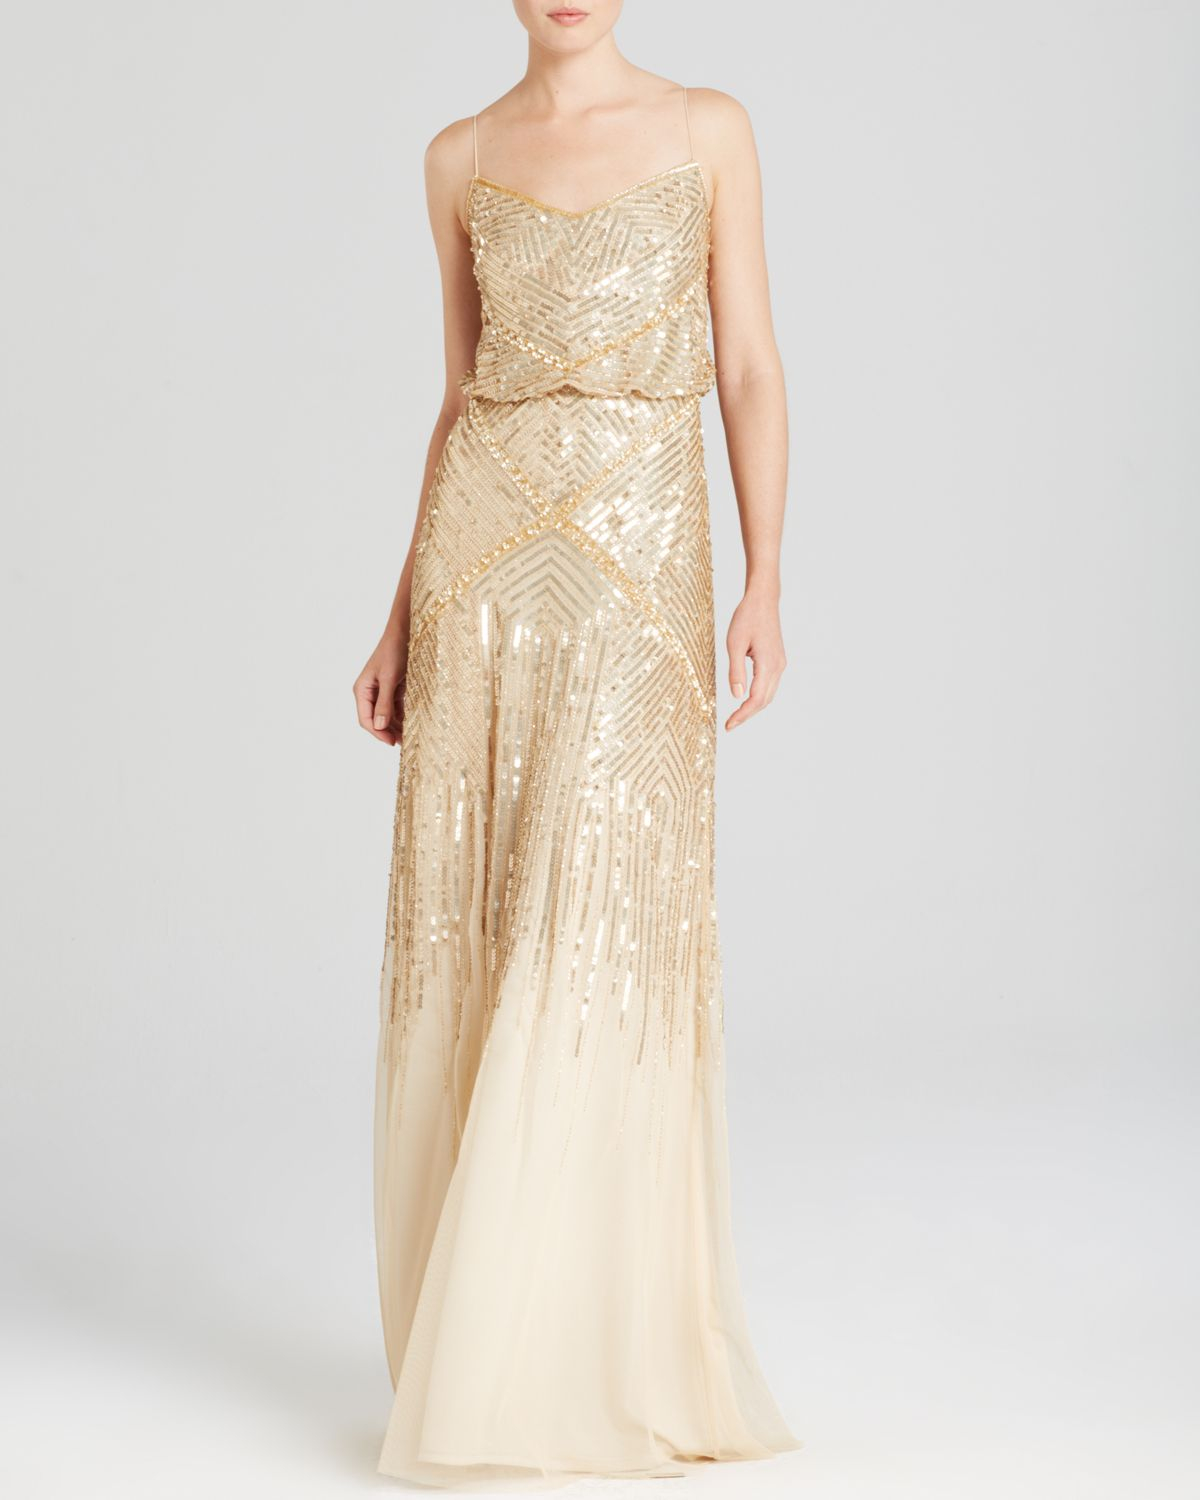 Adrianna Papell Wedding Gowns: Adrianna Papell Sleeveless Beaded Blouson Gown